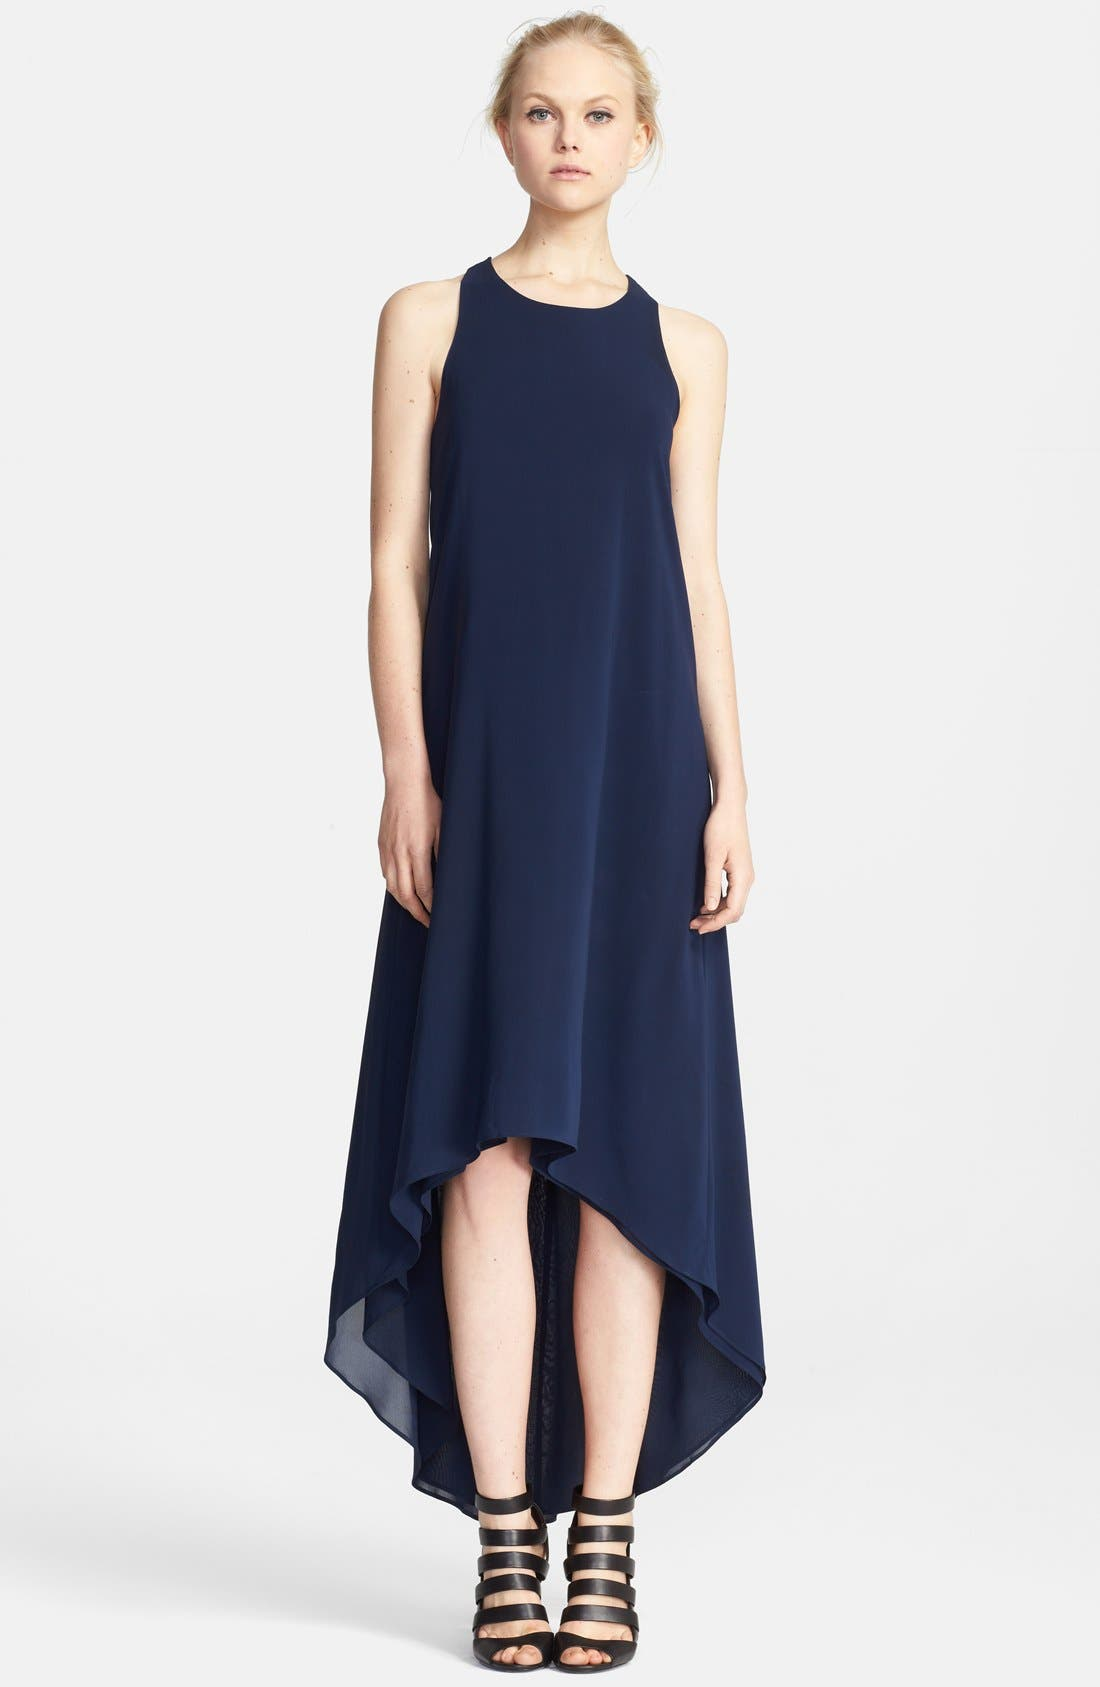 Alternate Image 1 Selected - Alice + Olivia Twisted Back High/Low Dress